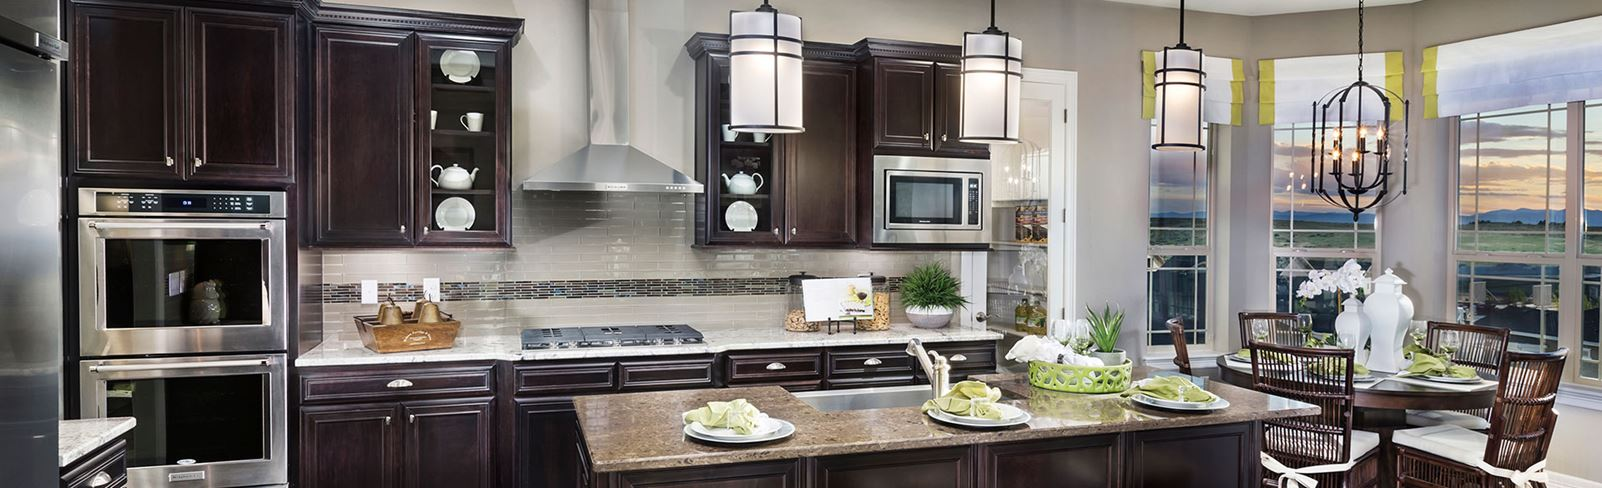 Toll Brothers 55+, New Home Builders in Parker Colorado